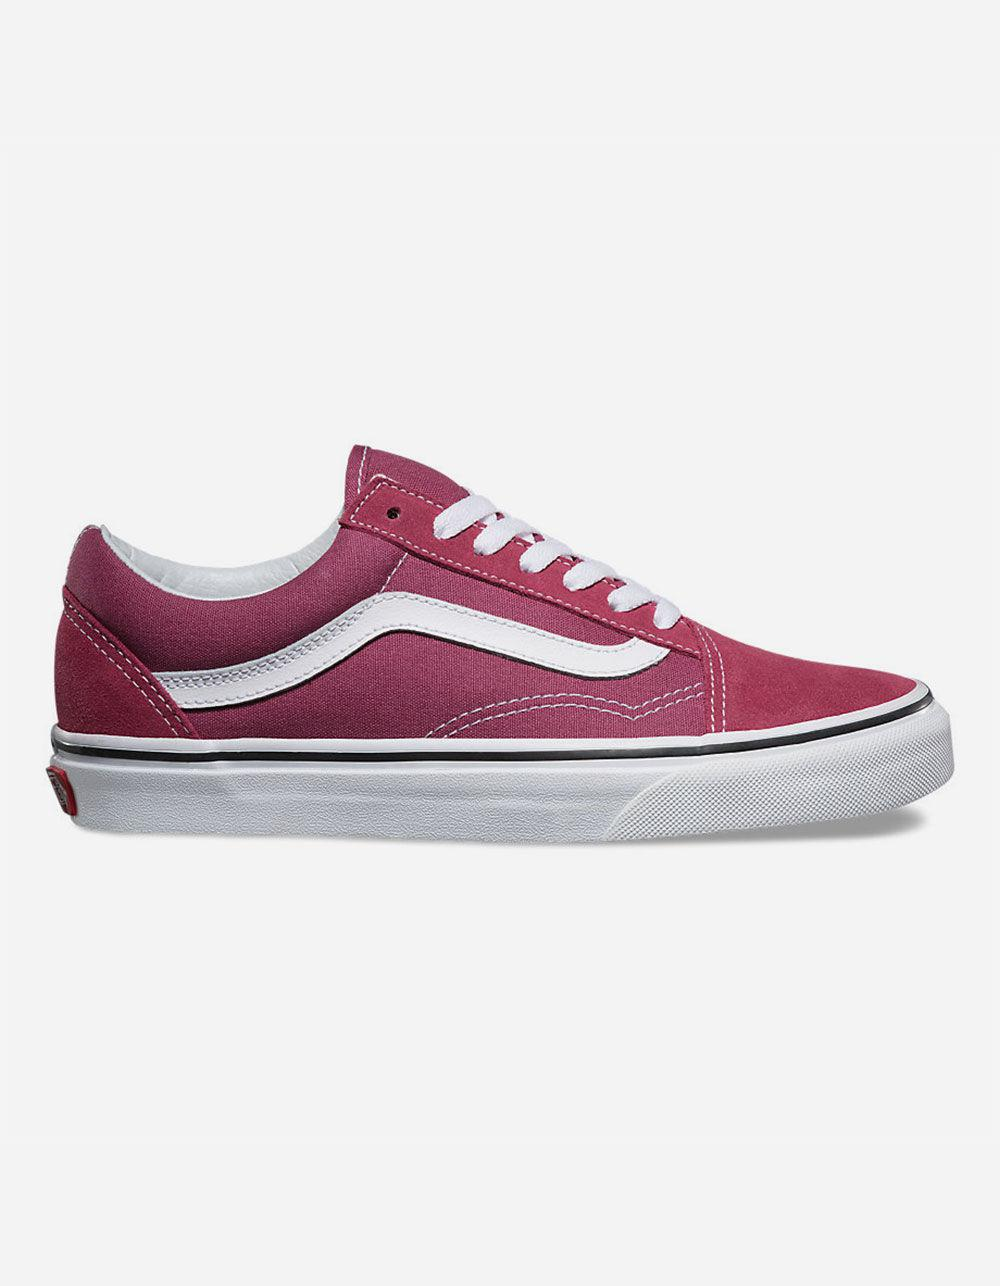 35c56bba062afd Lyst - Vans Old Skool Dry Rose   True White Womens Shoes - Save 15%